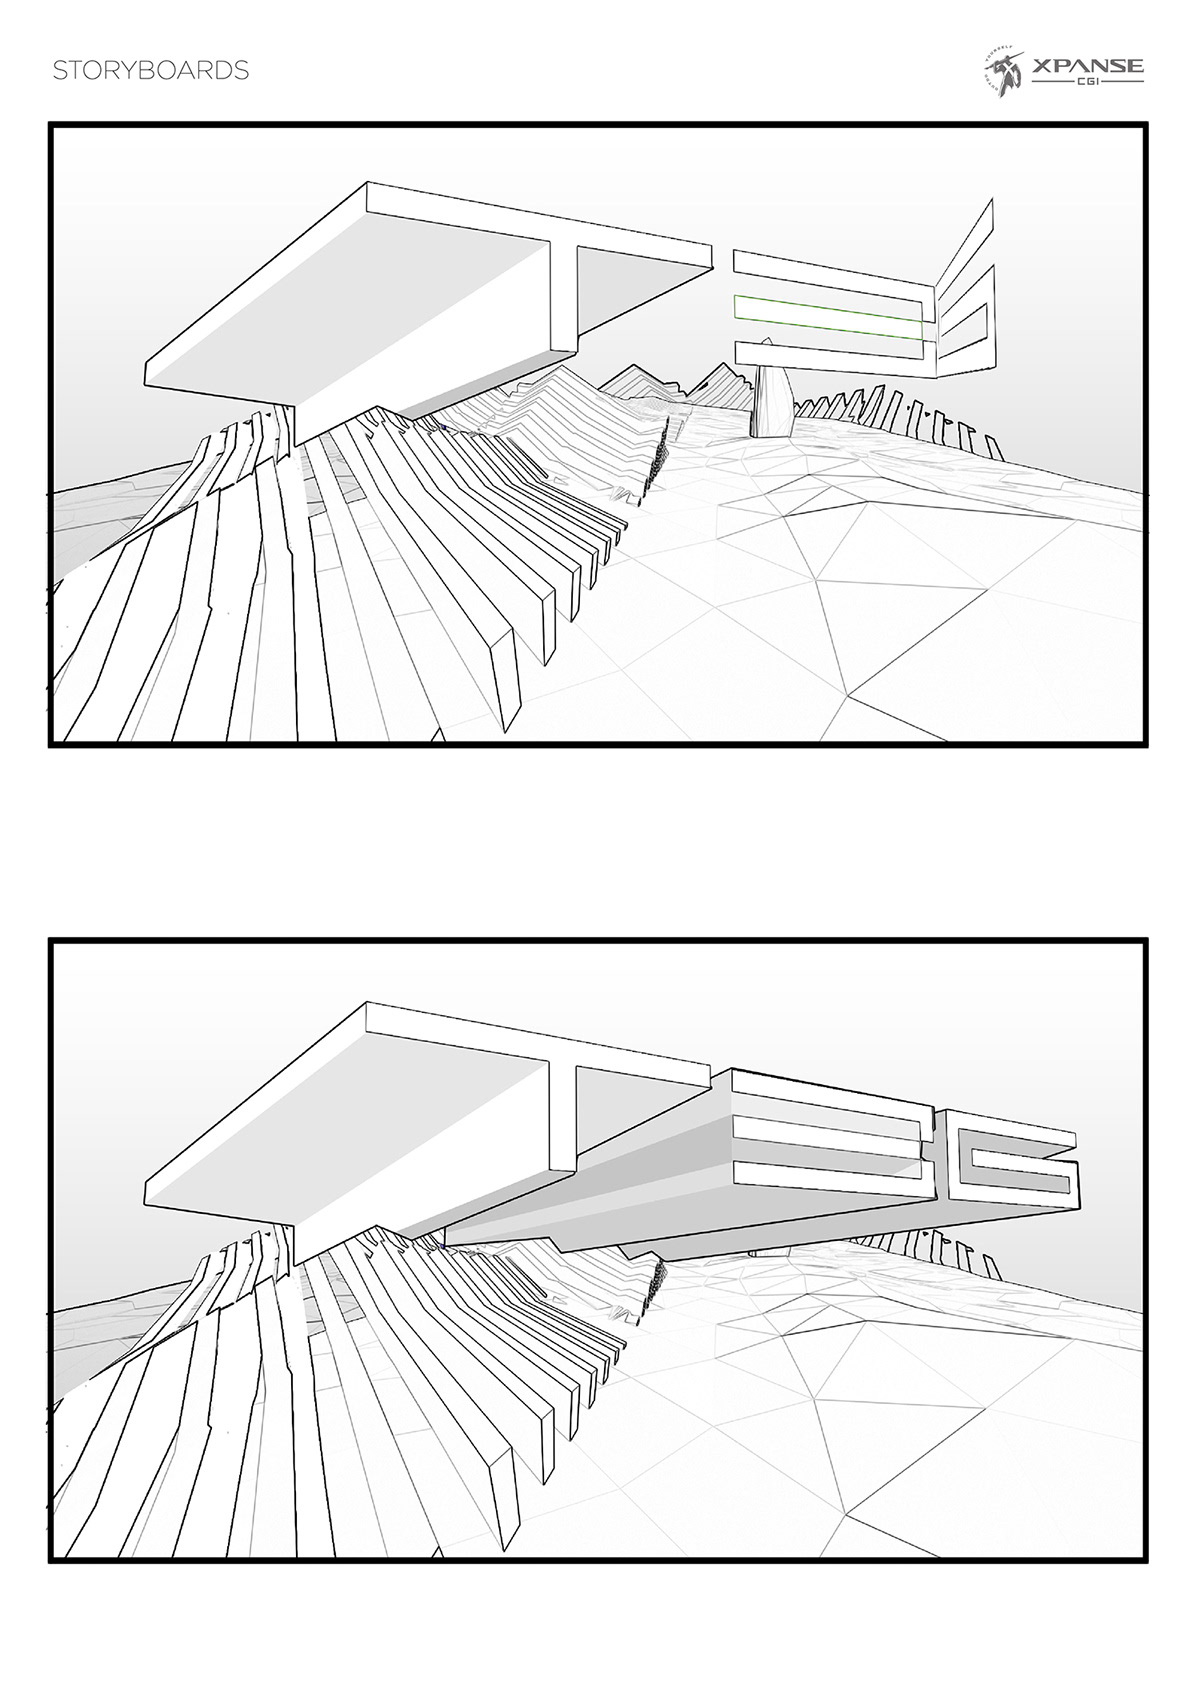 teg animation  Animated Intro intro Storyboards concept design concept art 3d animation 3dsmax storyboarding